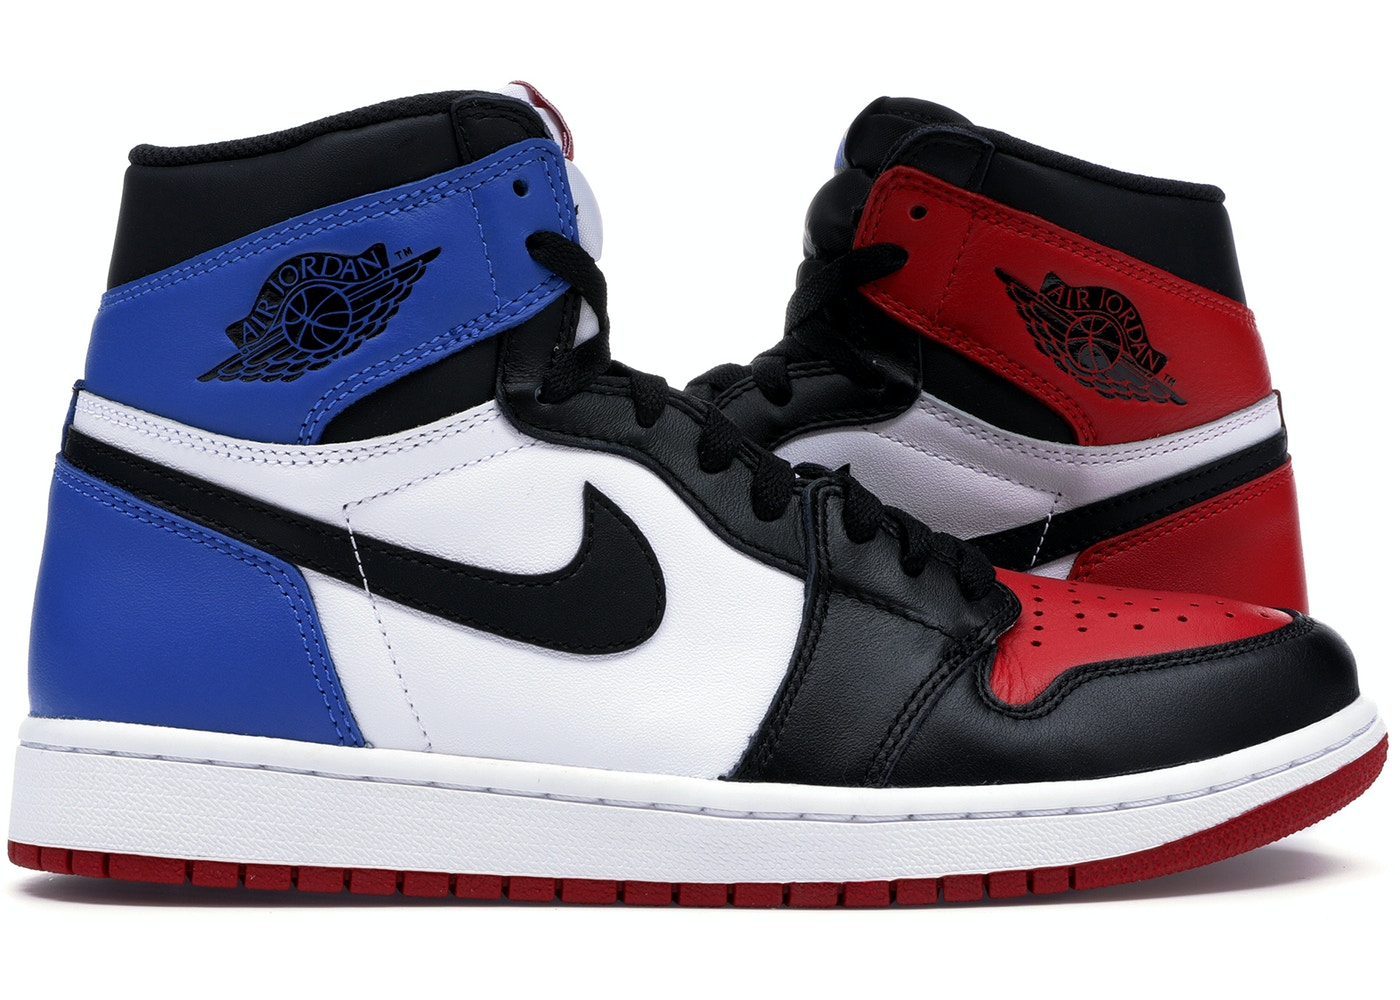 ec48e7509c0 Jordan 1 Retro Top 3 - 555088-026